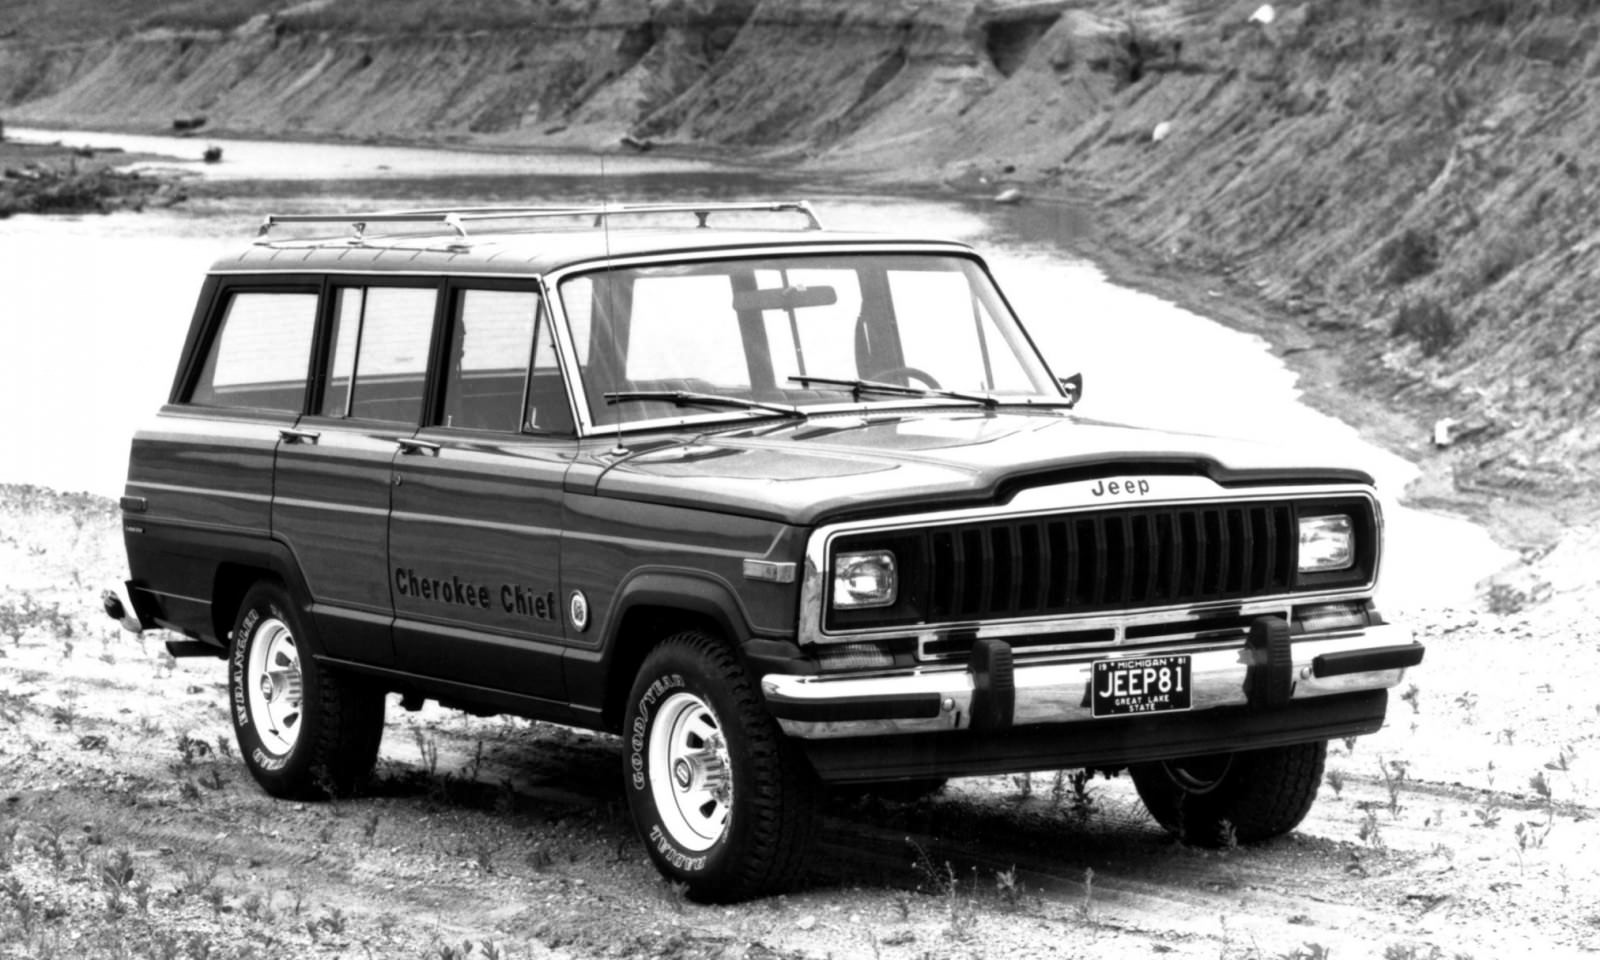 JEEP Heritage and Icons - Mega Gallery in 113 Rare Photos 15